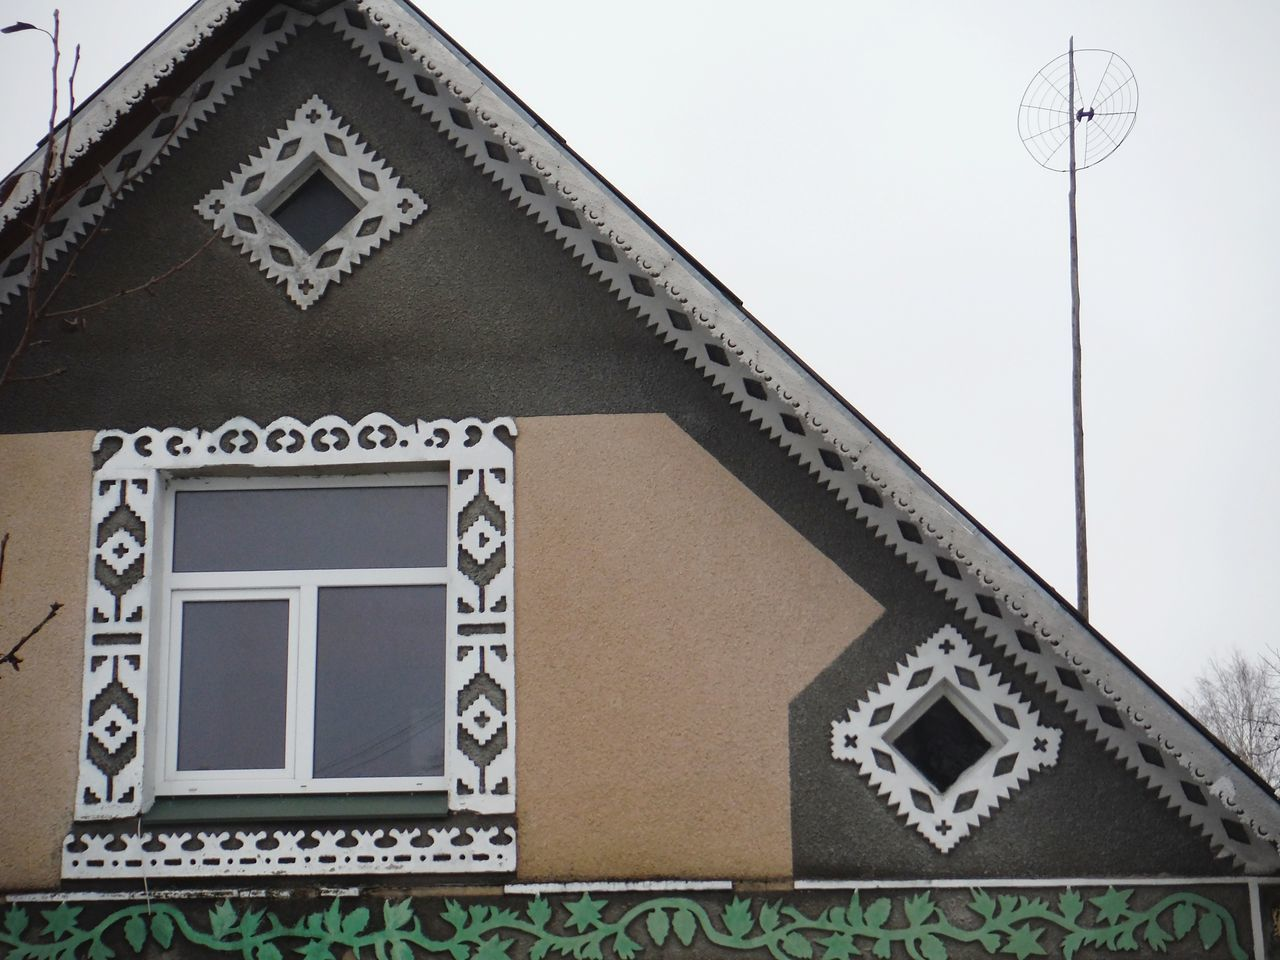 Taking Photos Houses And Windows House House Ornaments House Facade Close-up Designs And Lines Architecture_collection Architectural Detail The Week On Eyem Check This Out Hanging Out Pattern, Texture, Shape And Form Minimalist Architecture